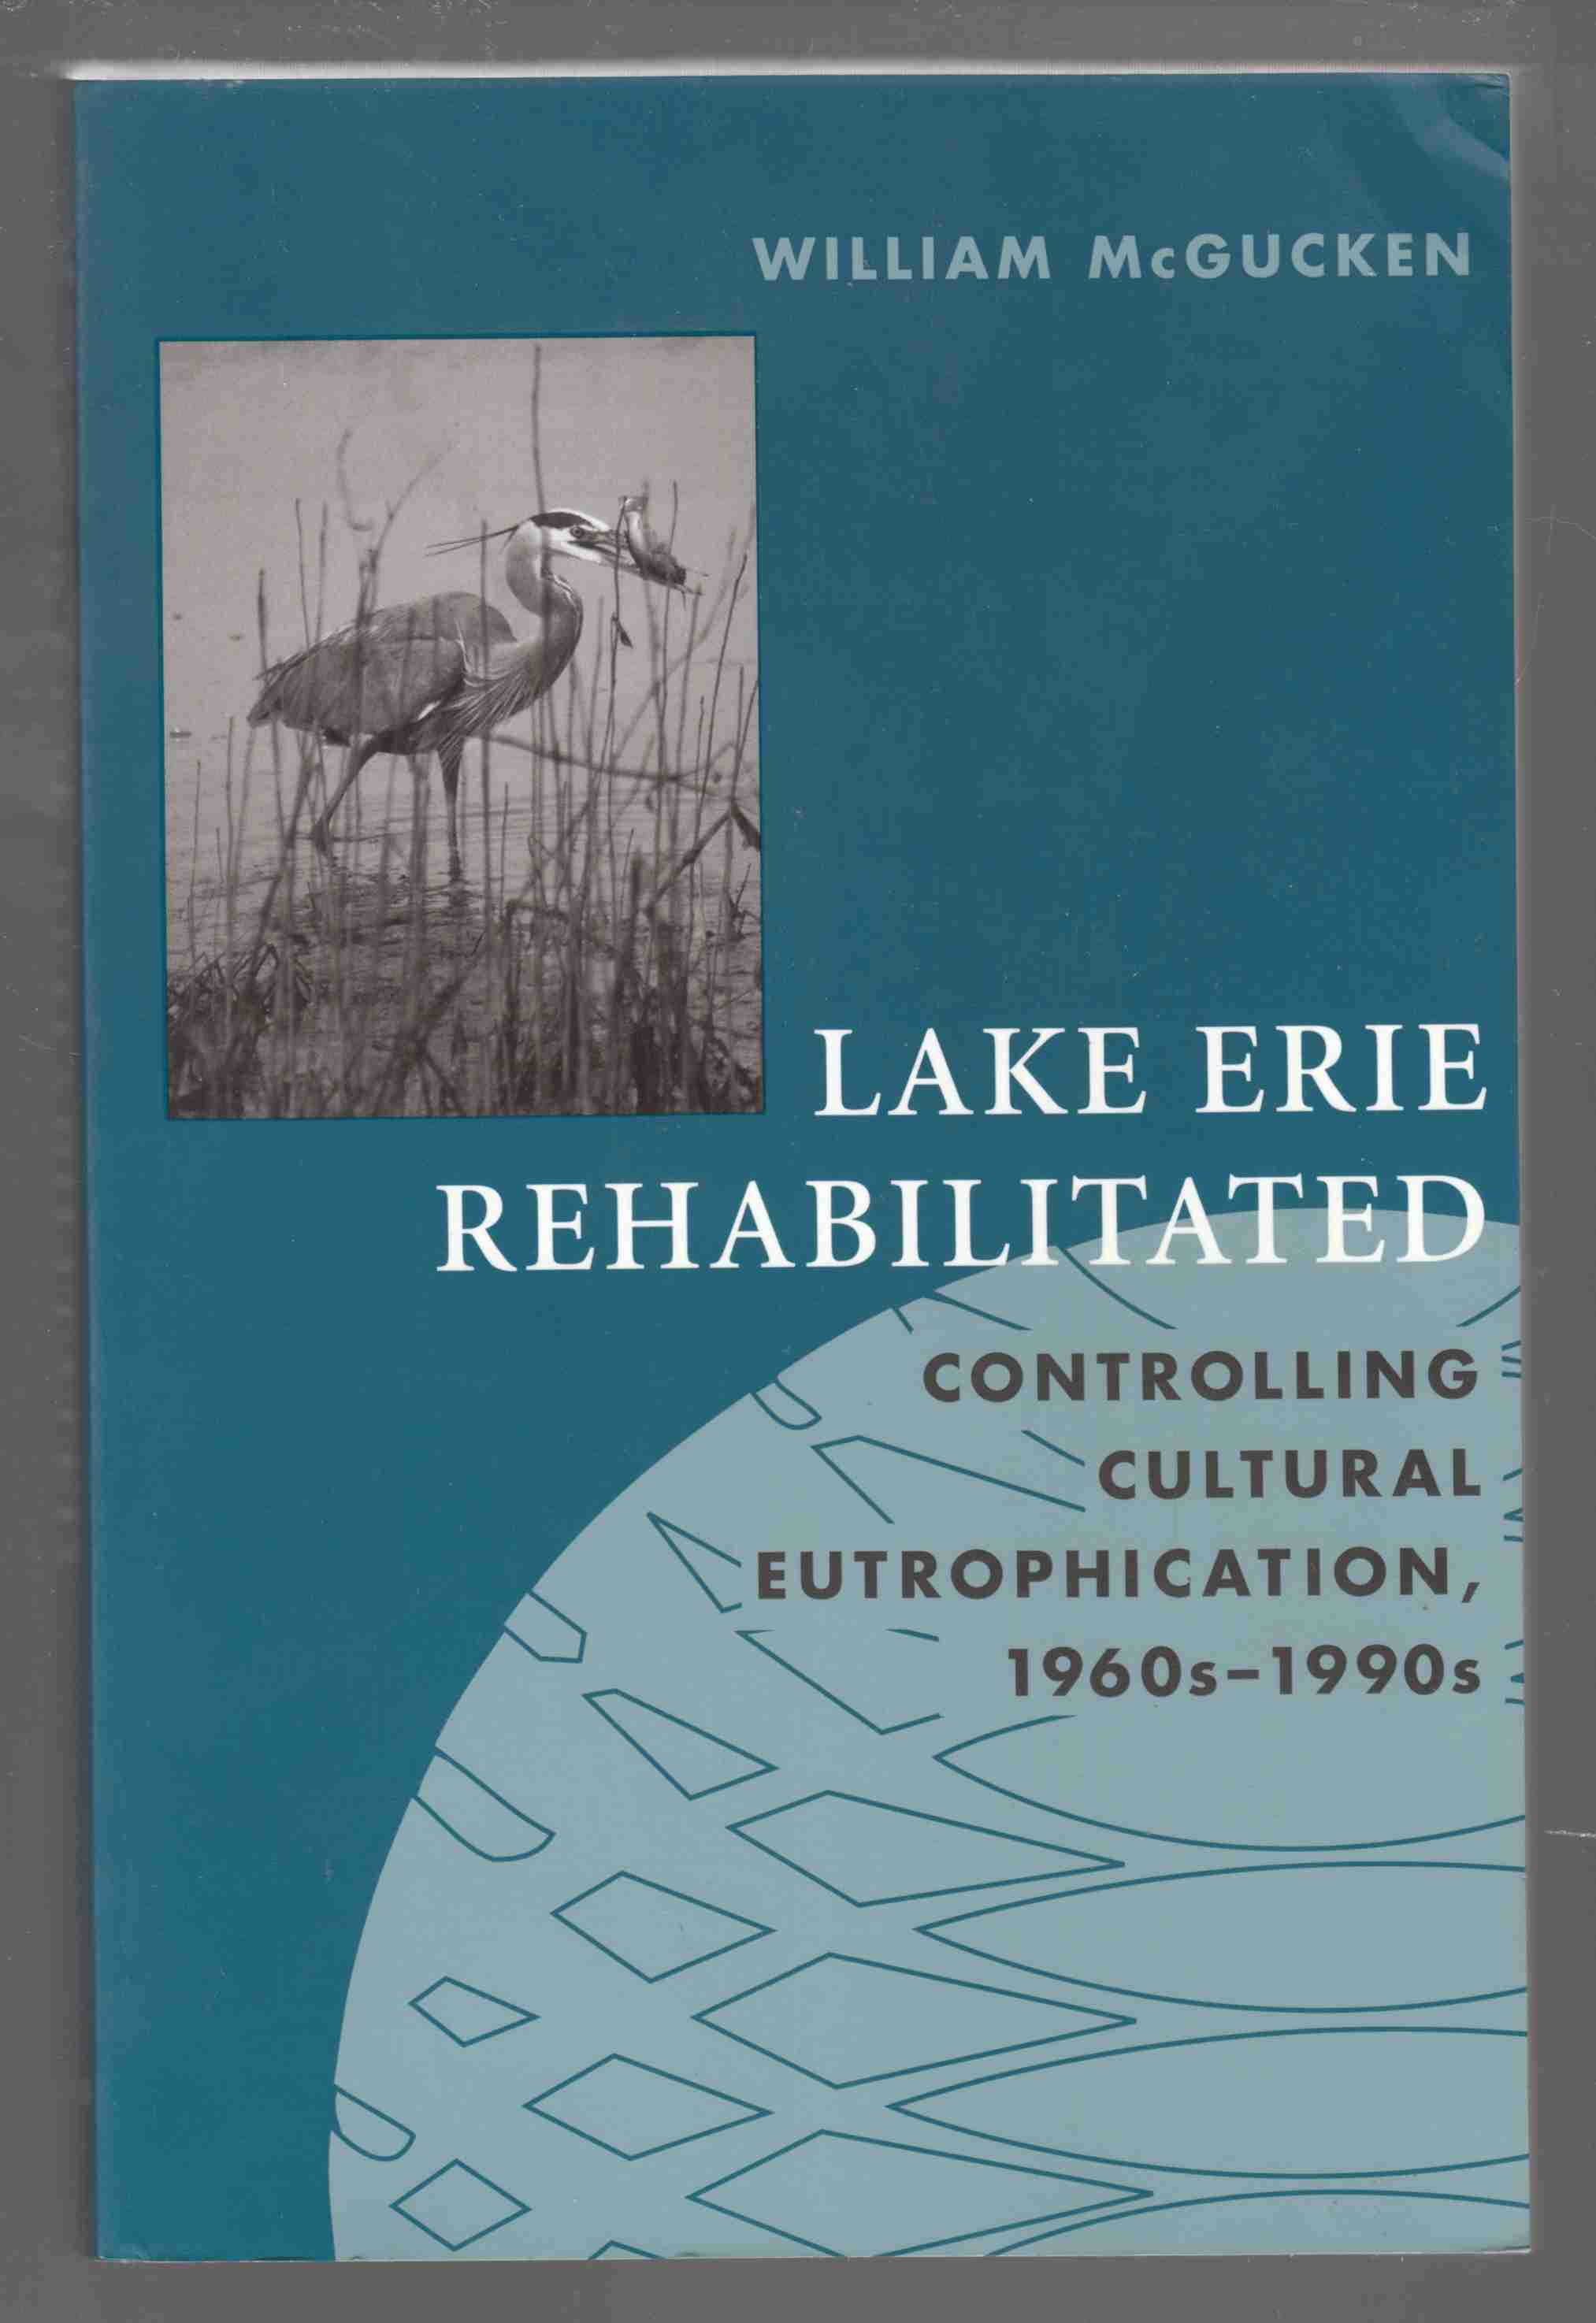 Image for Lake Erie Rehabilitated Controlling Cultural Eutrophication, 1960s - 1990s